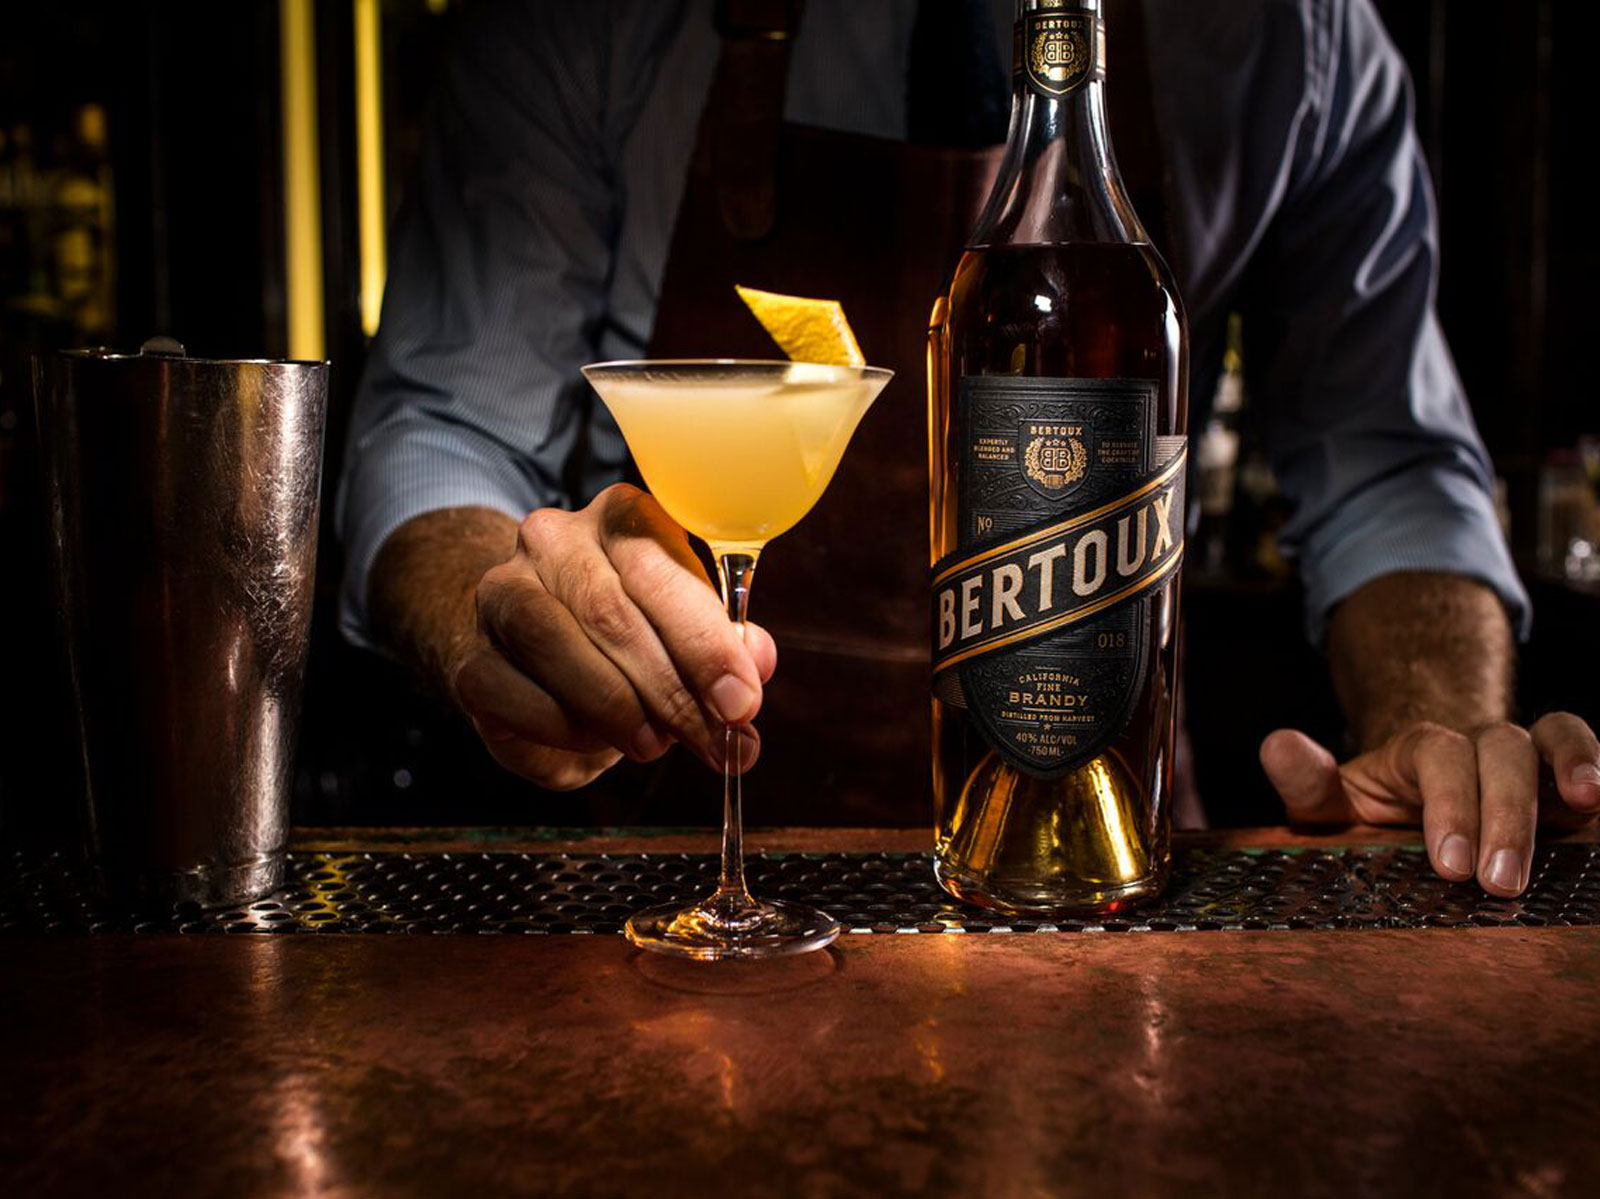 New Bertoux Brandy Will Change the Way You Think About This Misunderstood Spirit